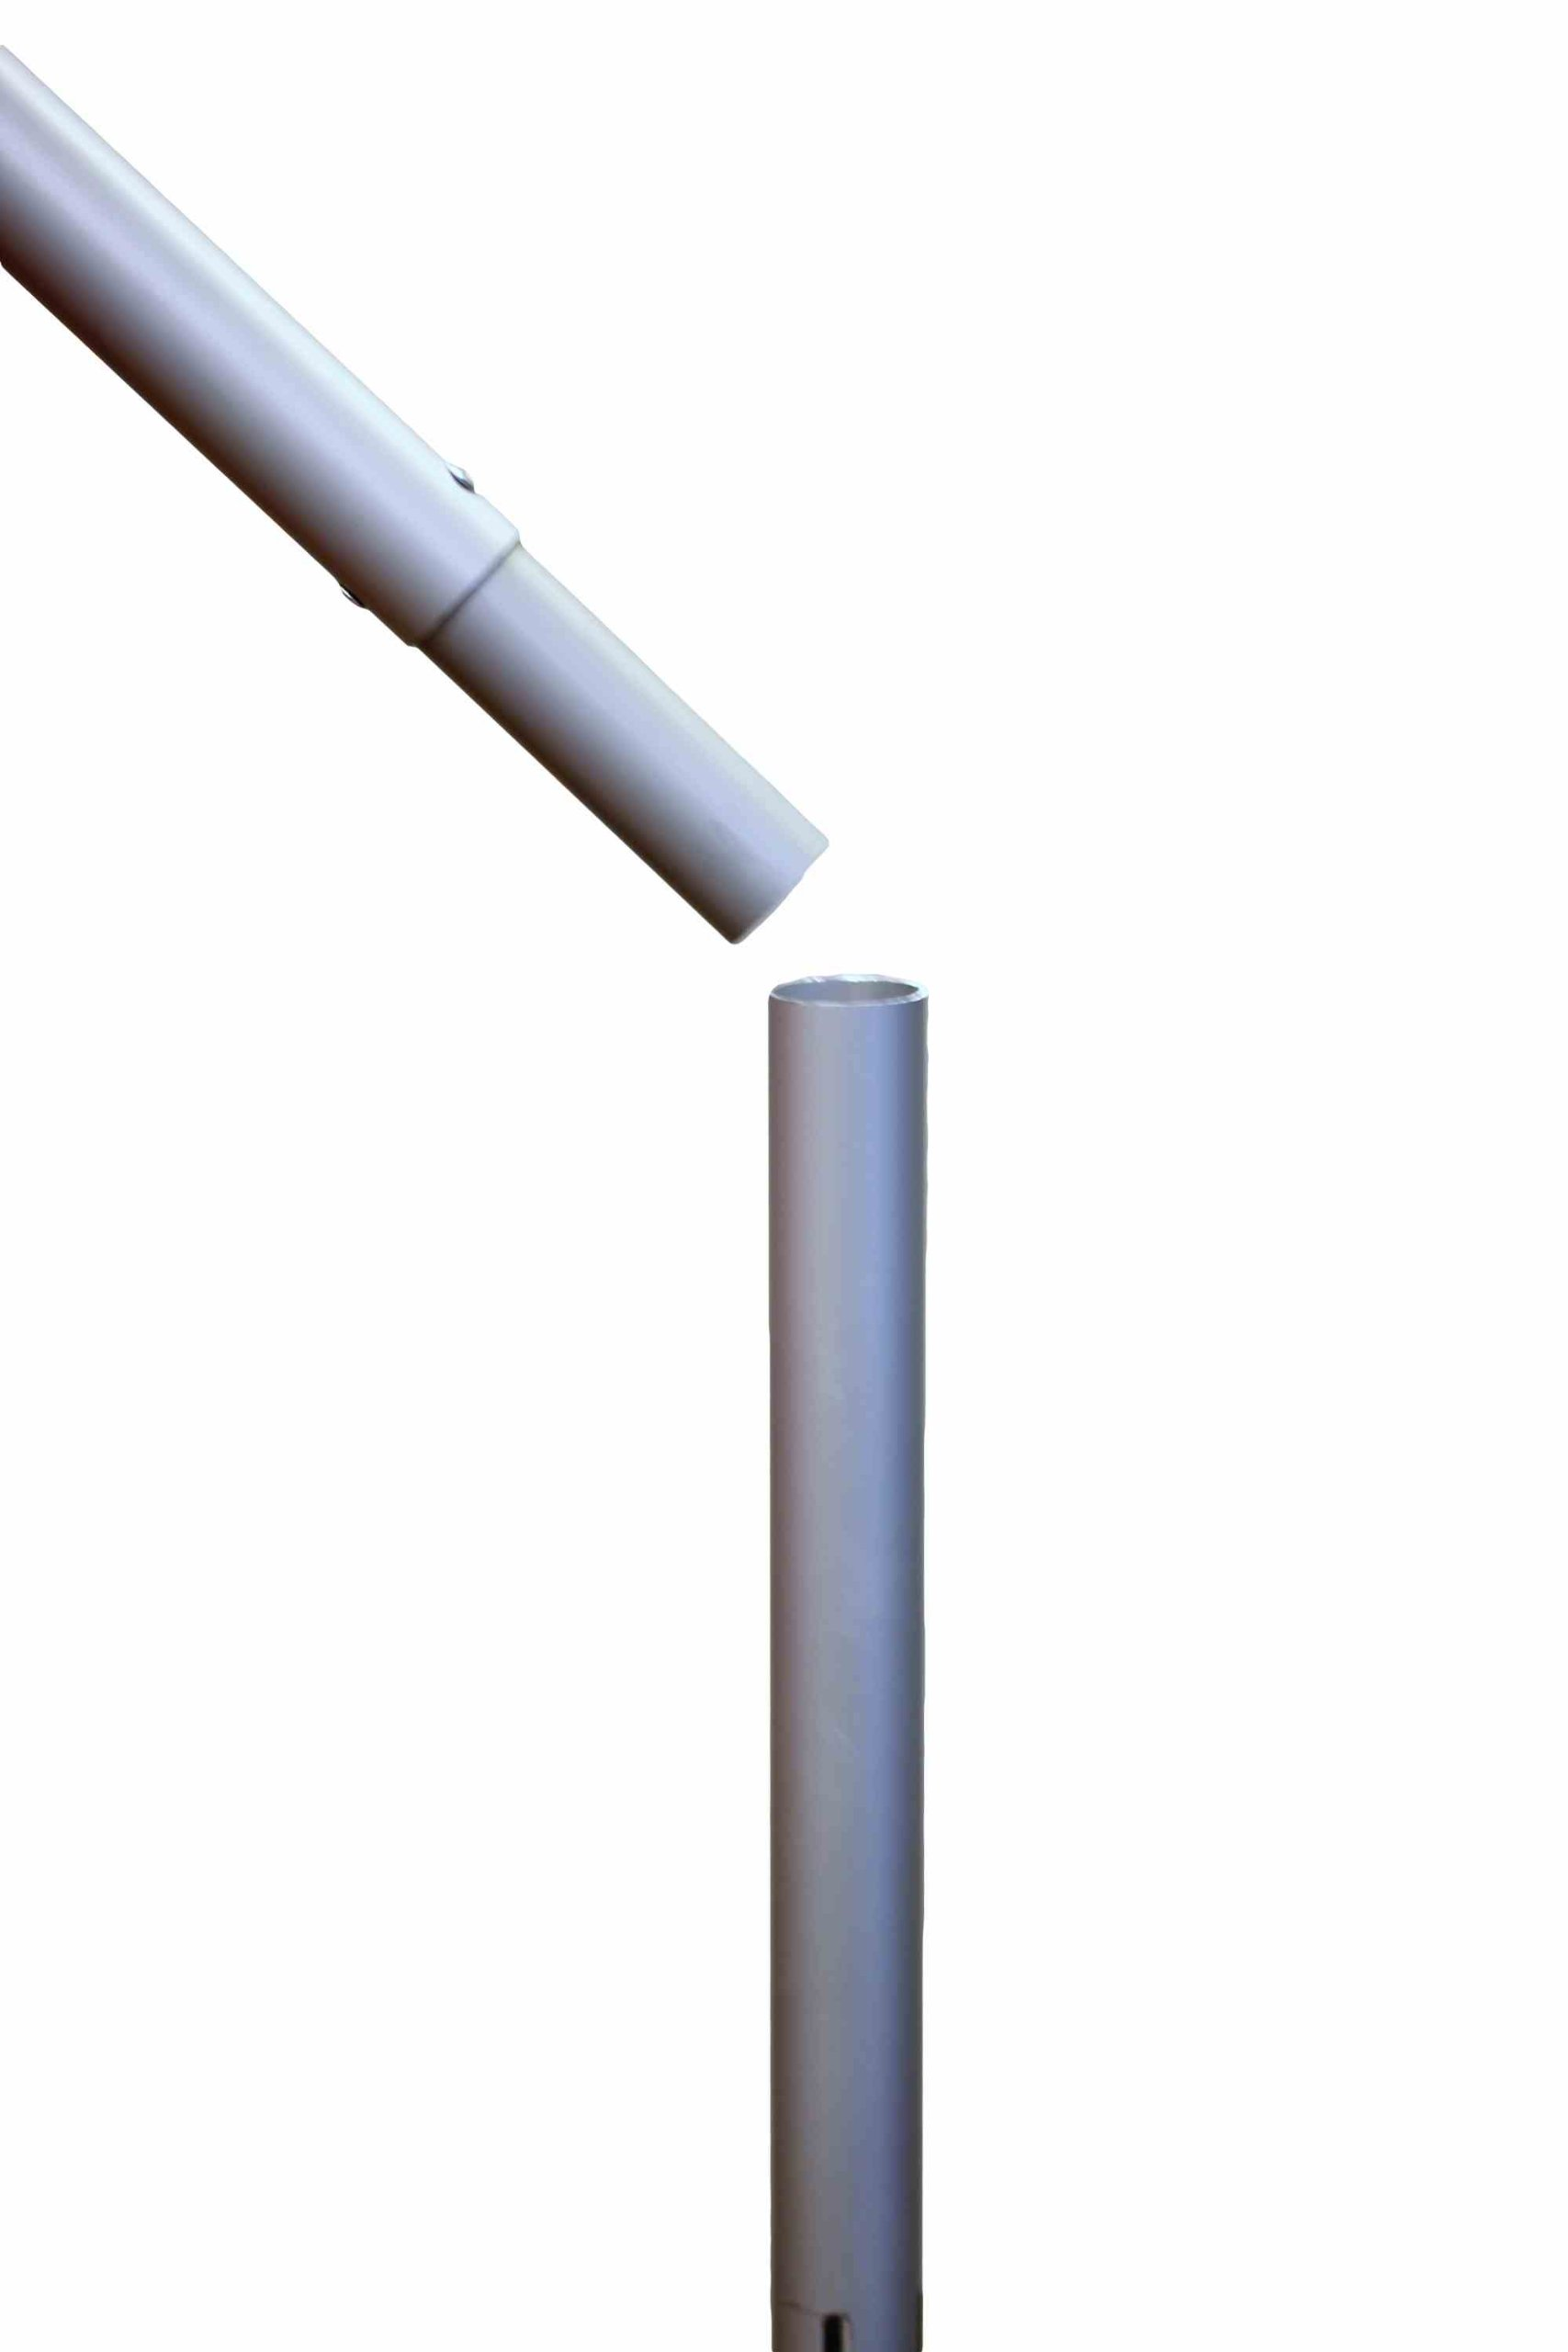 8 Ft. Tall Break-Apart Vertical Slip Fit Upright (For Pipe and Drape Displays and Backdrops) by P.D.O. (Image #2)